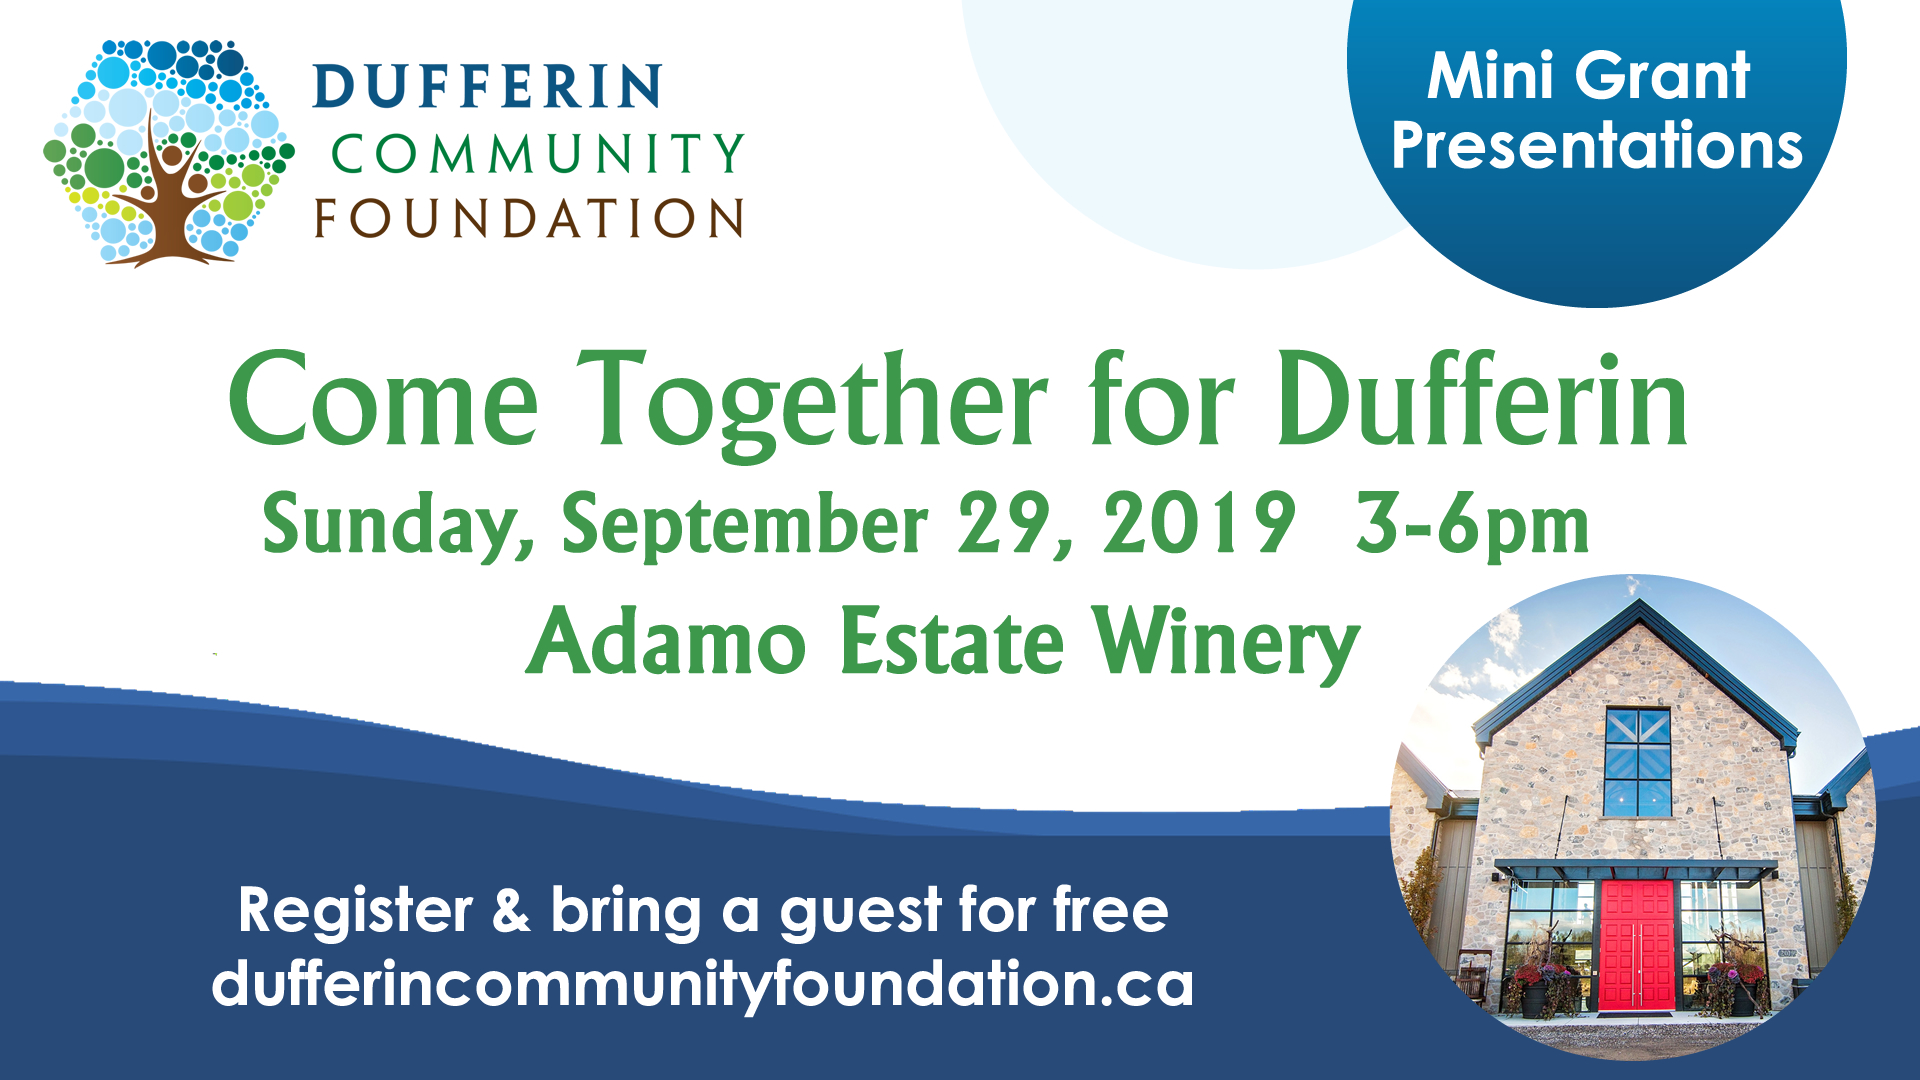 Come together for Dufferin event Sept 29/19